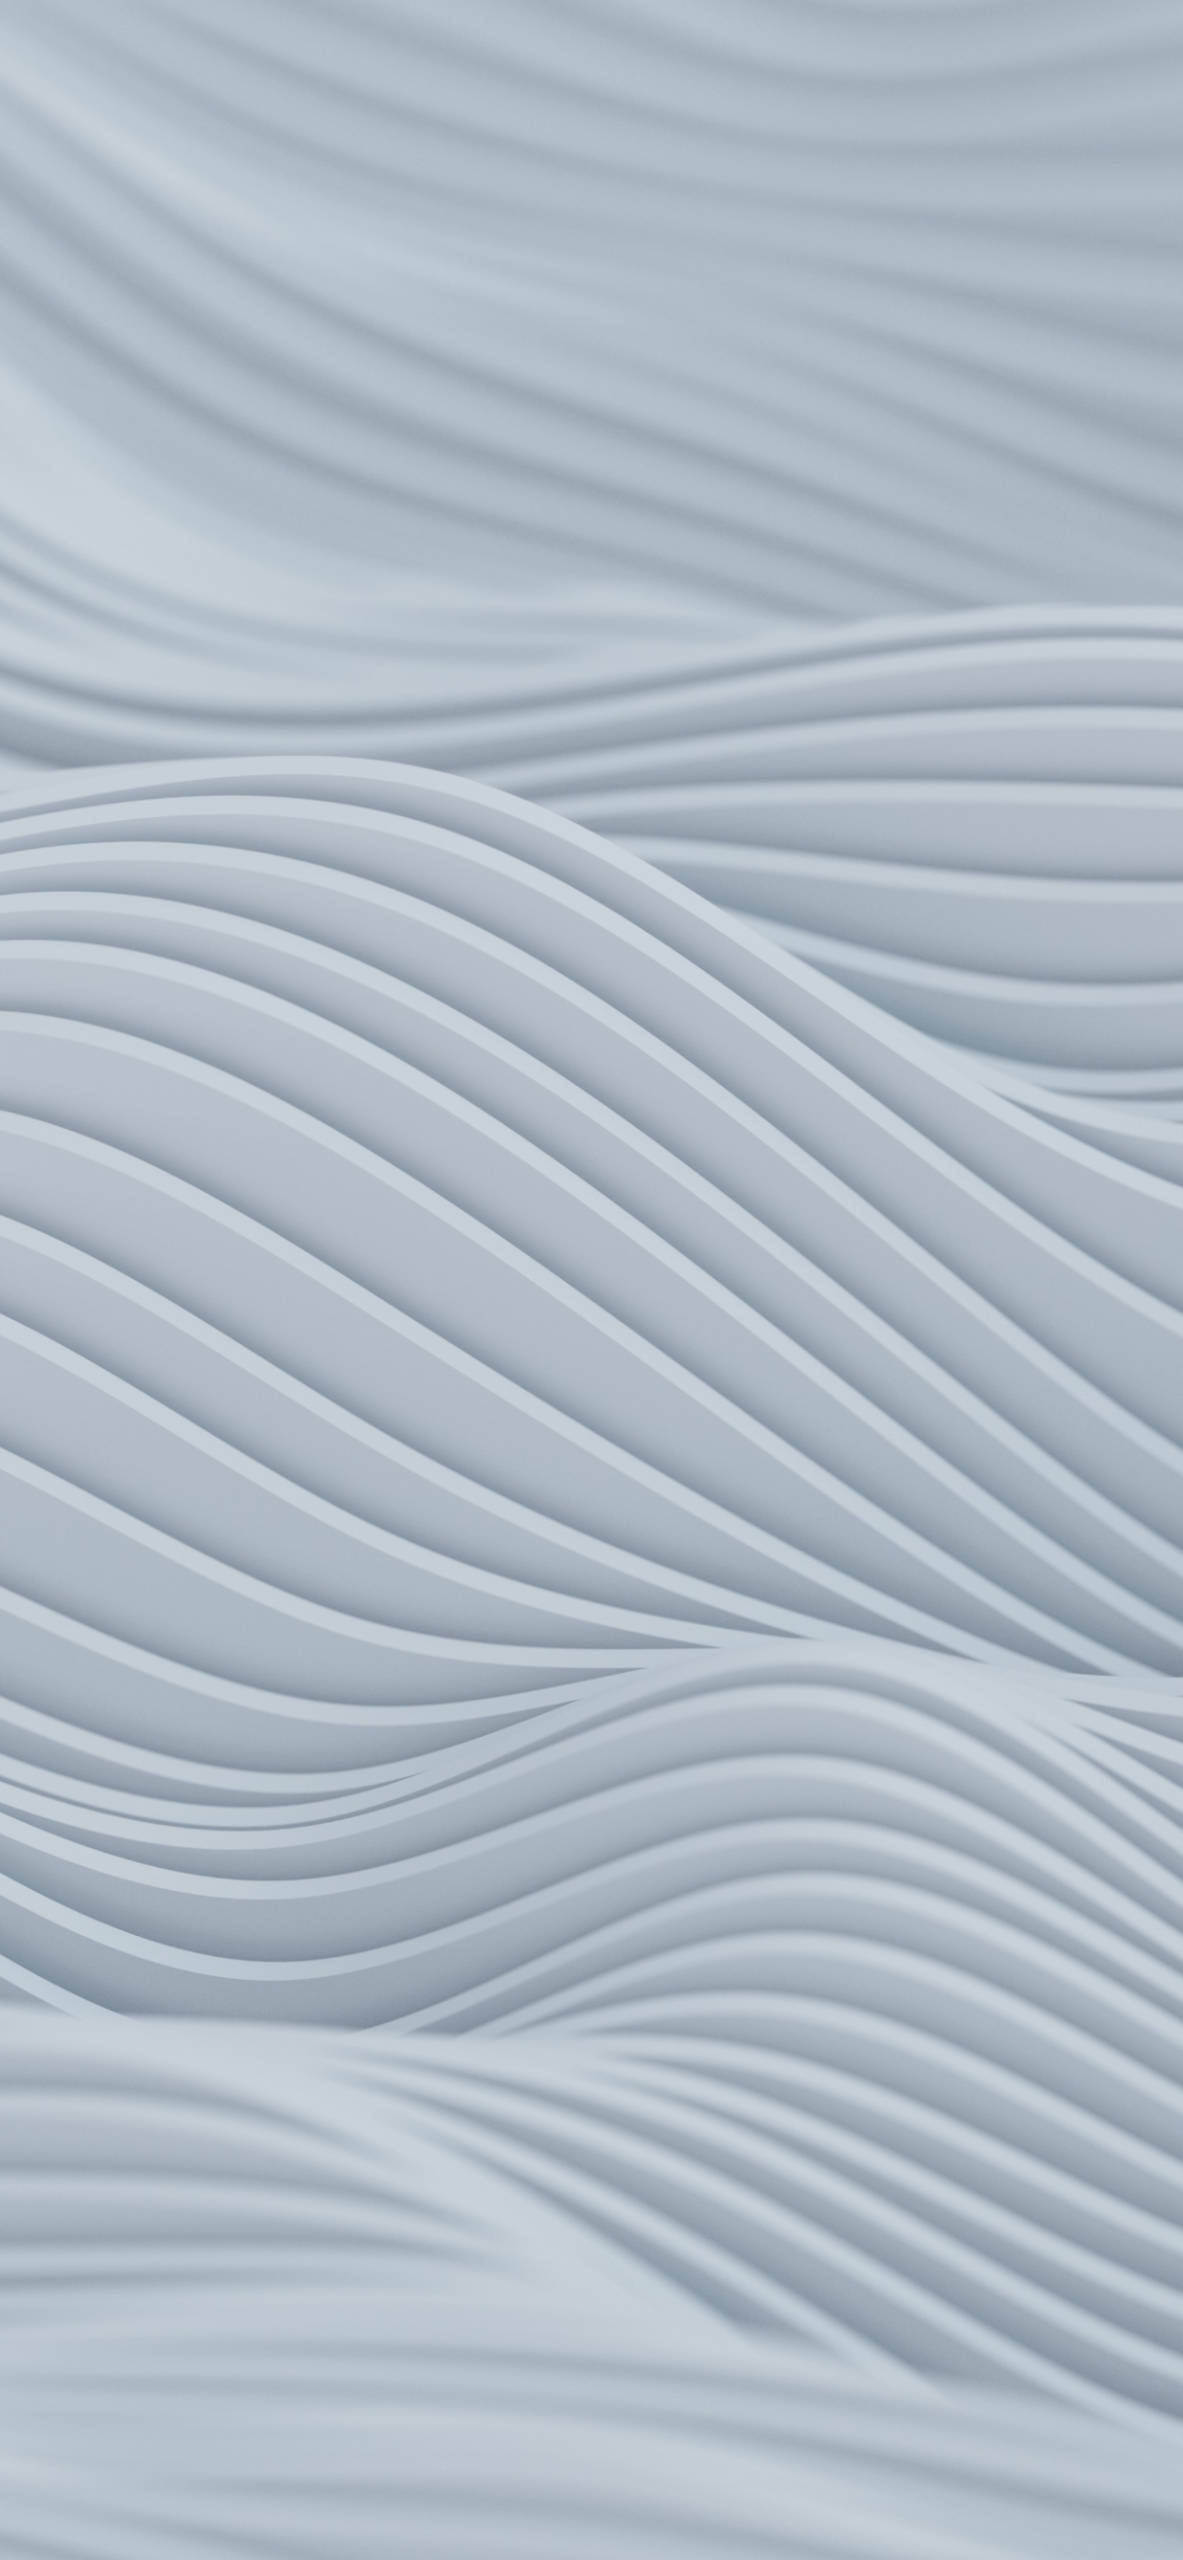 iPhone wallpapers curves white Texture